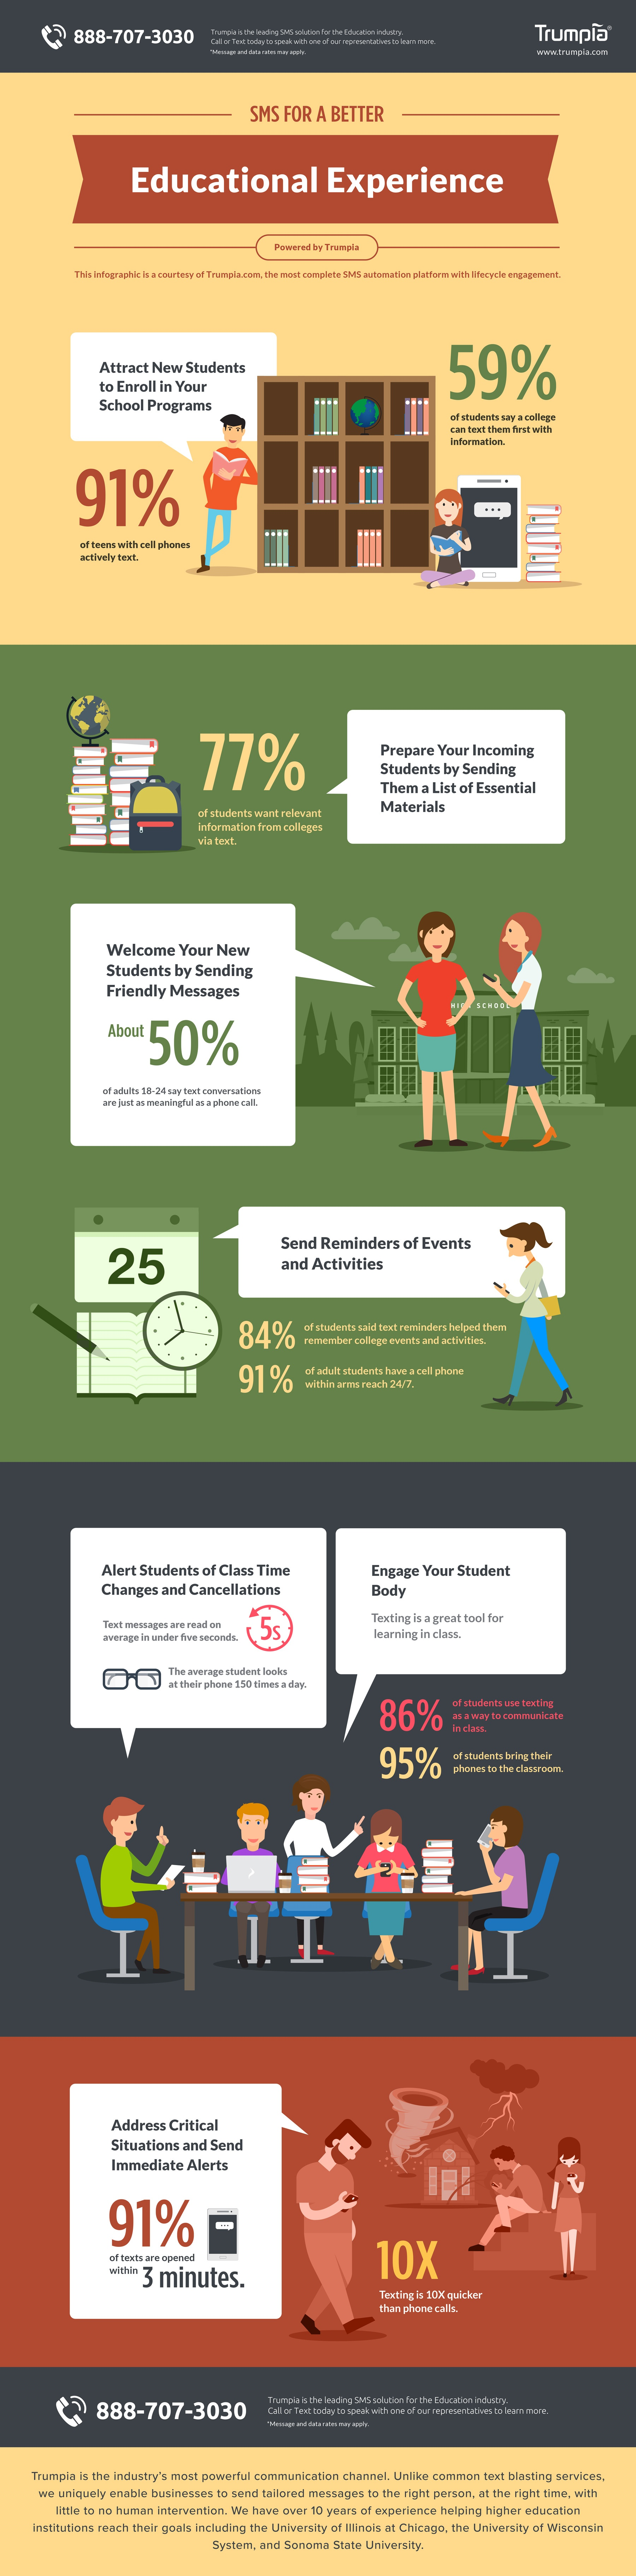 2018 College Student Communication Infographic